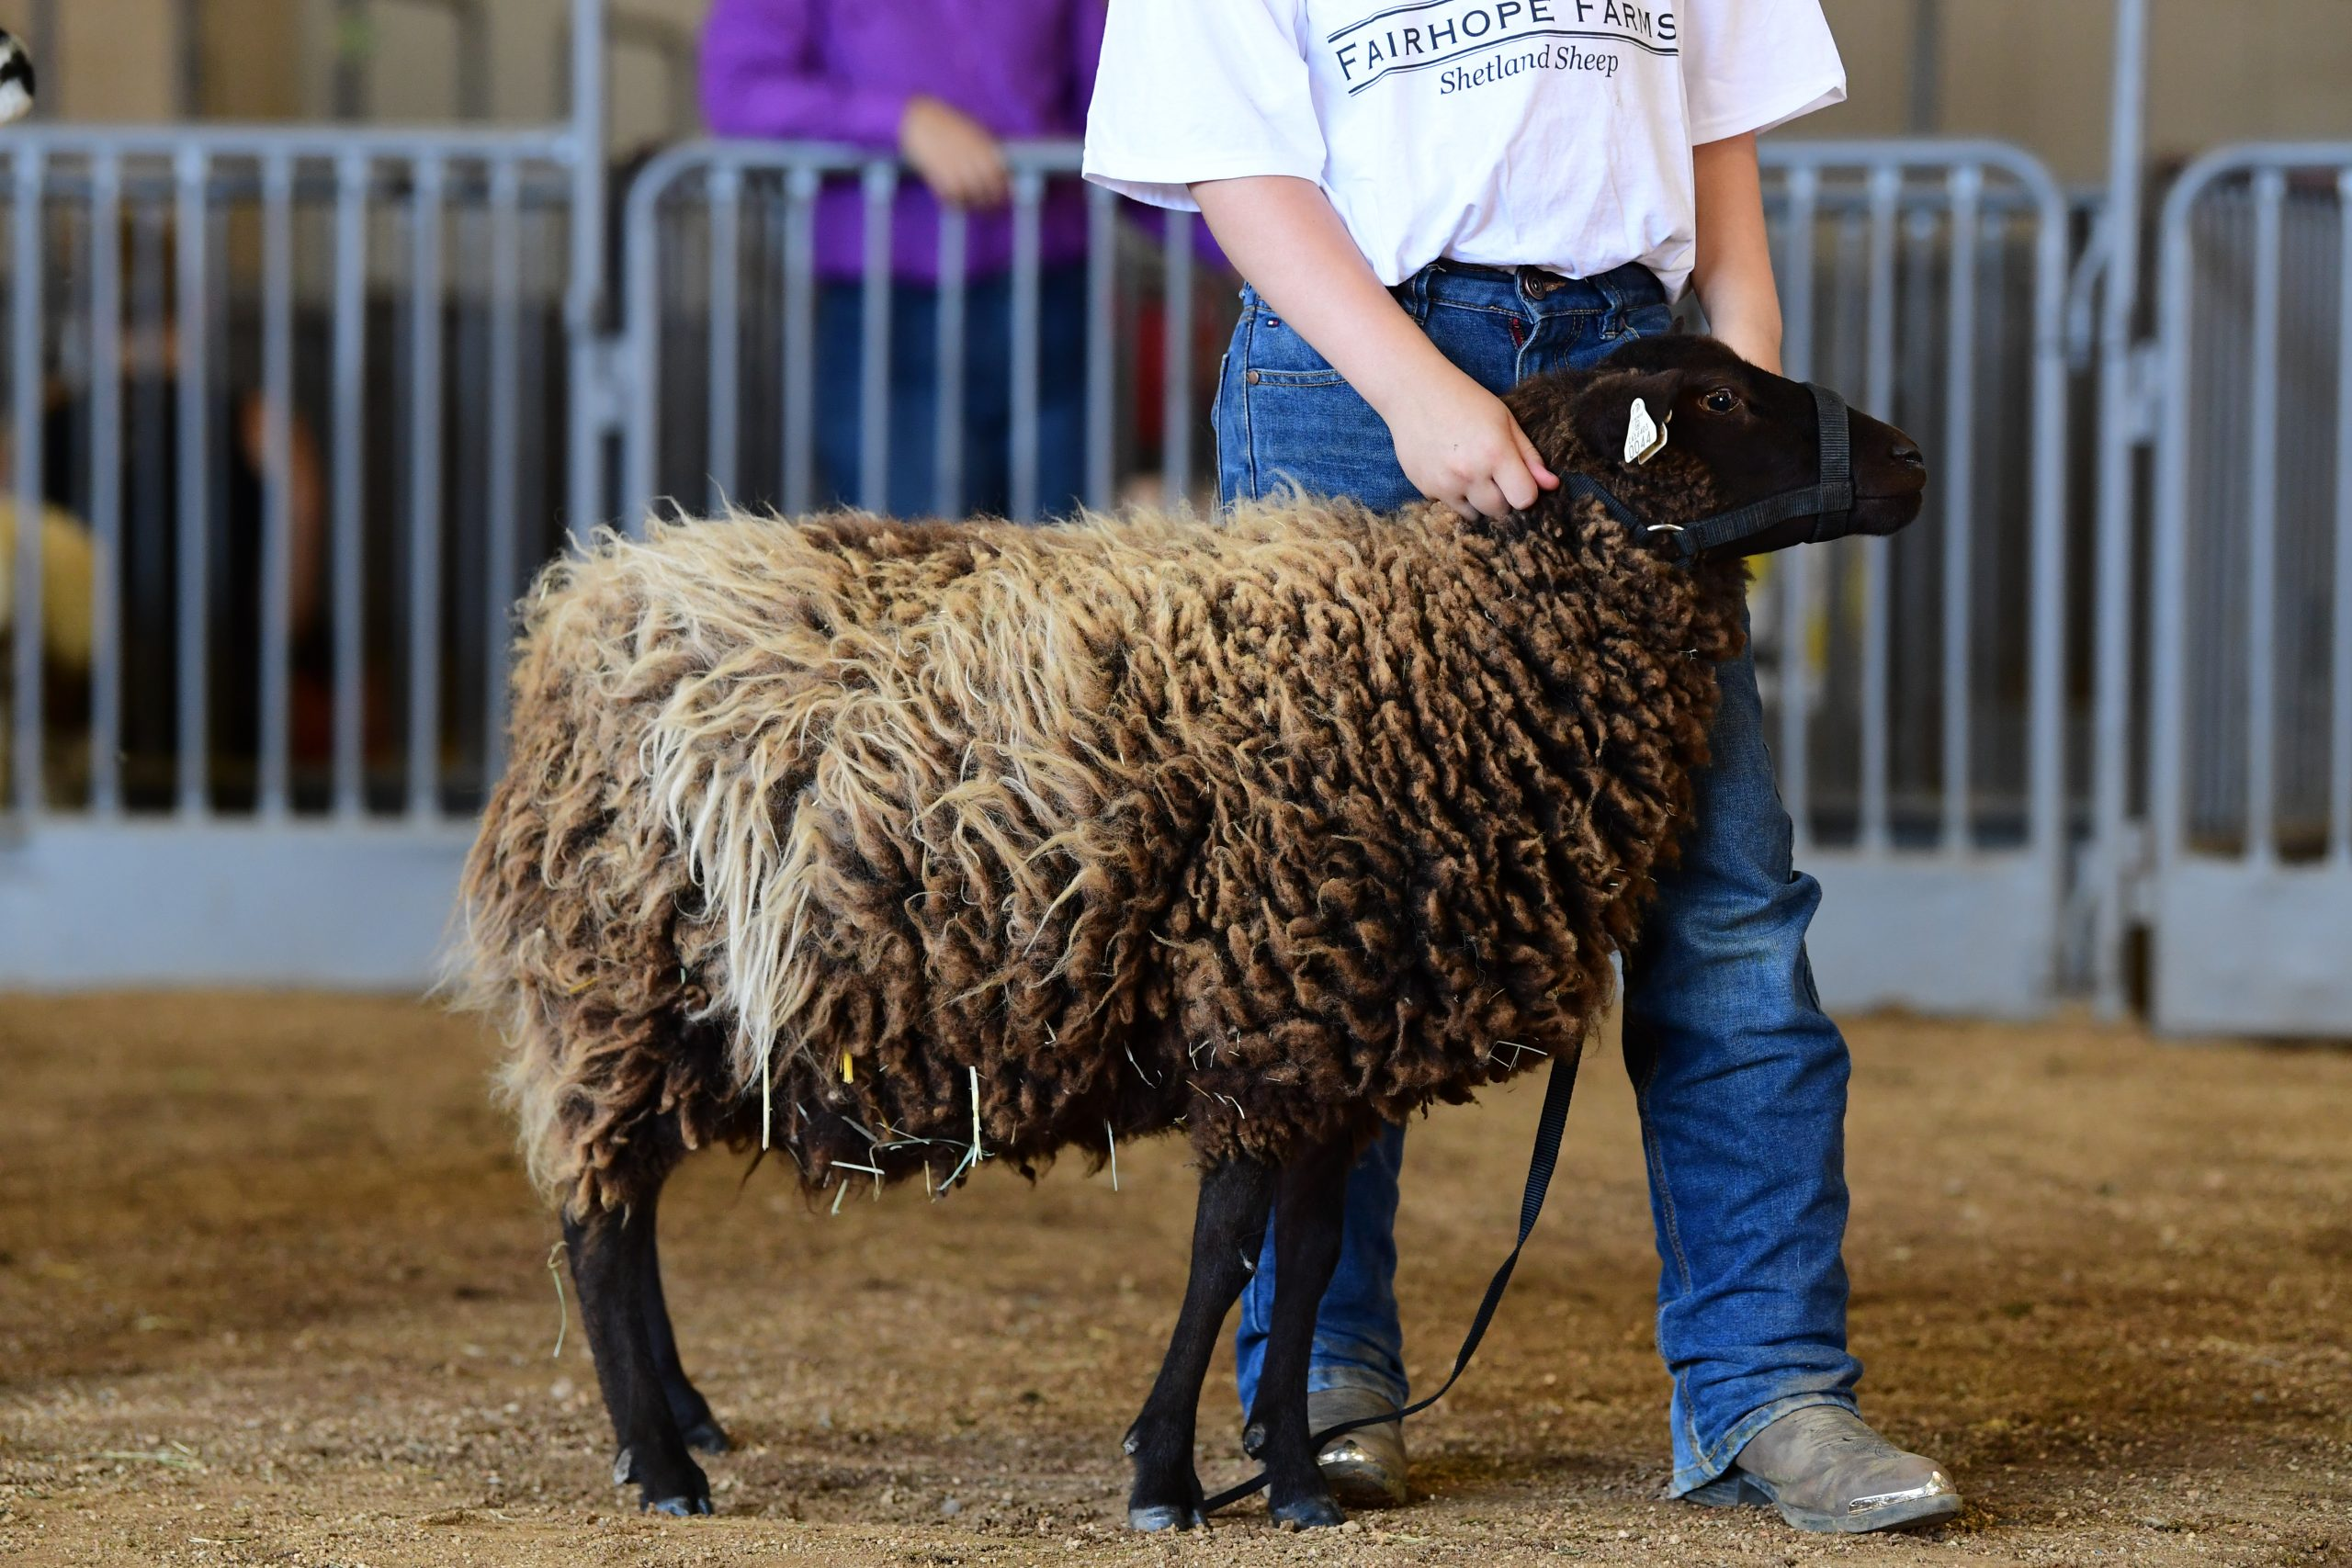 Sheep standing next to a person